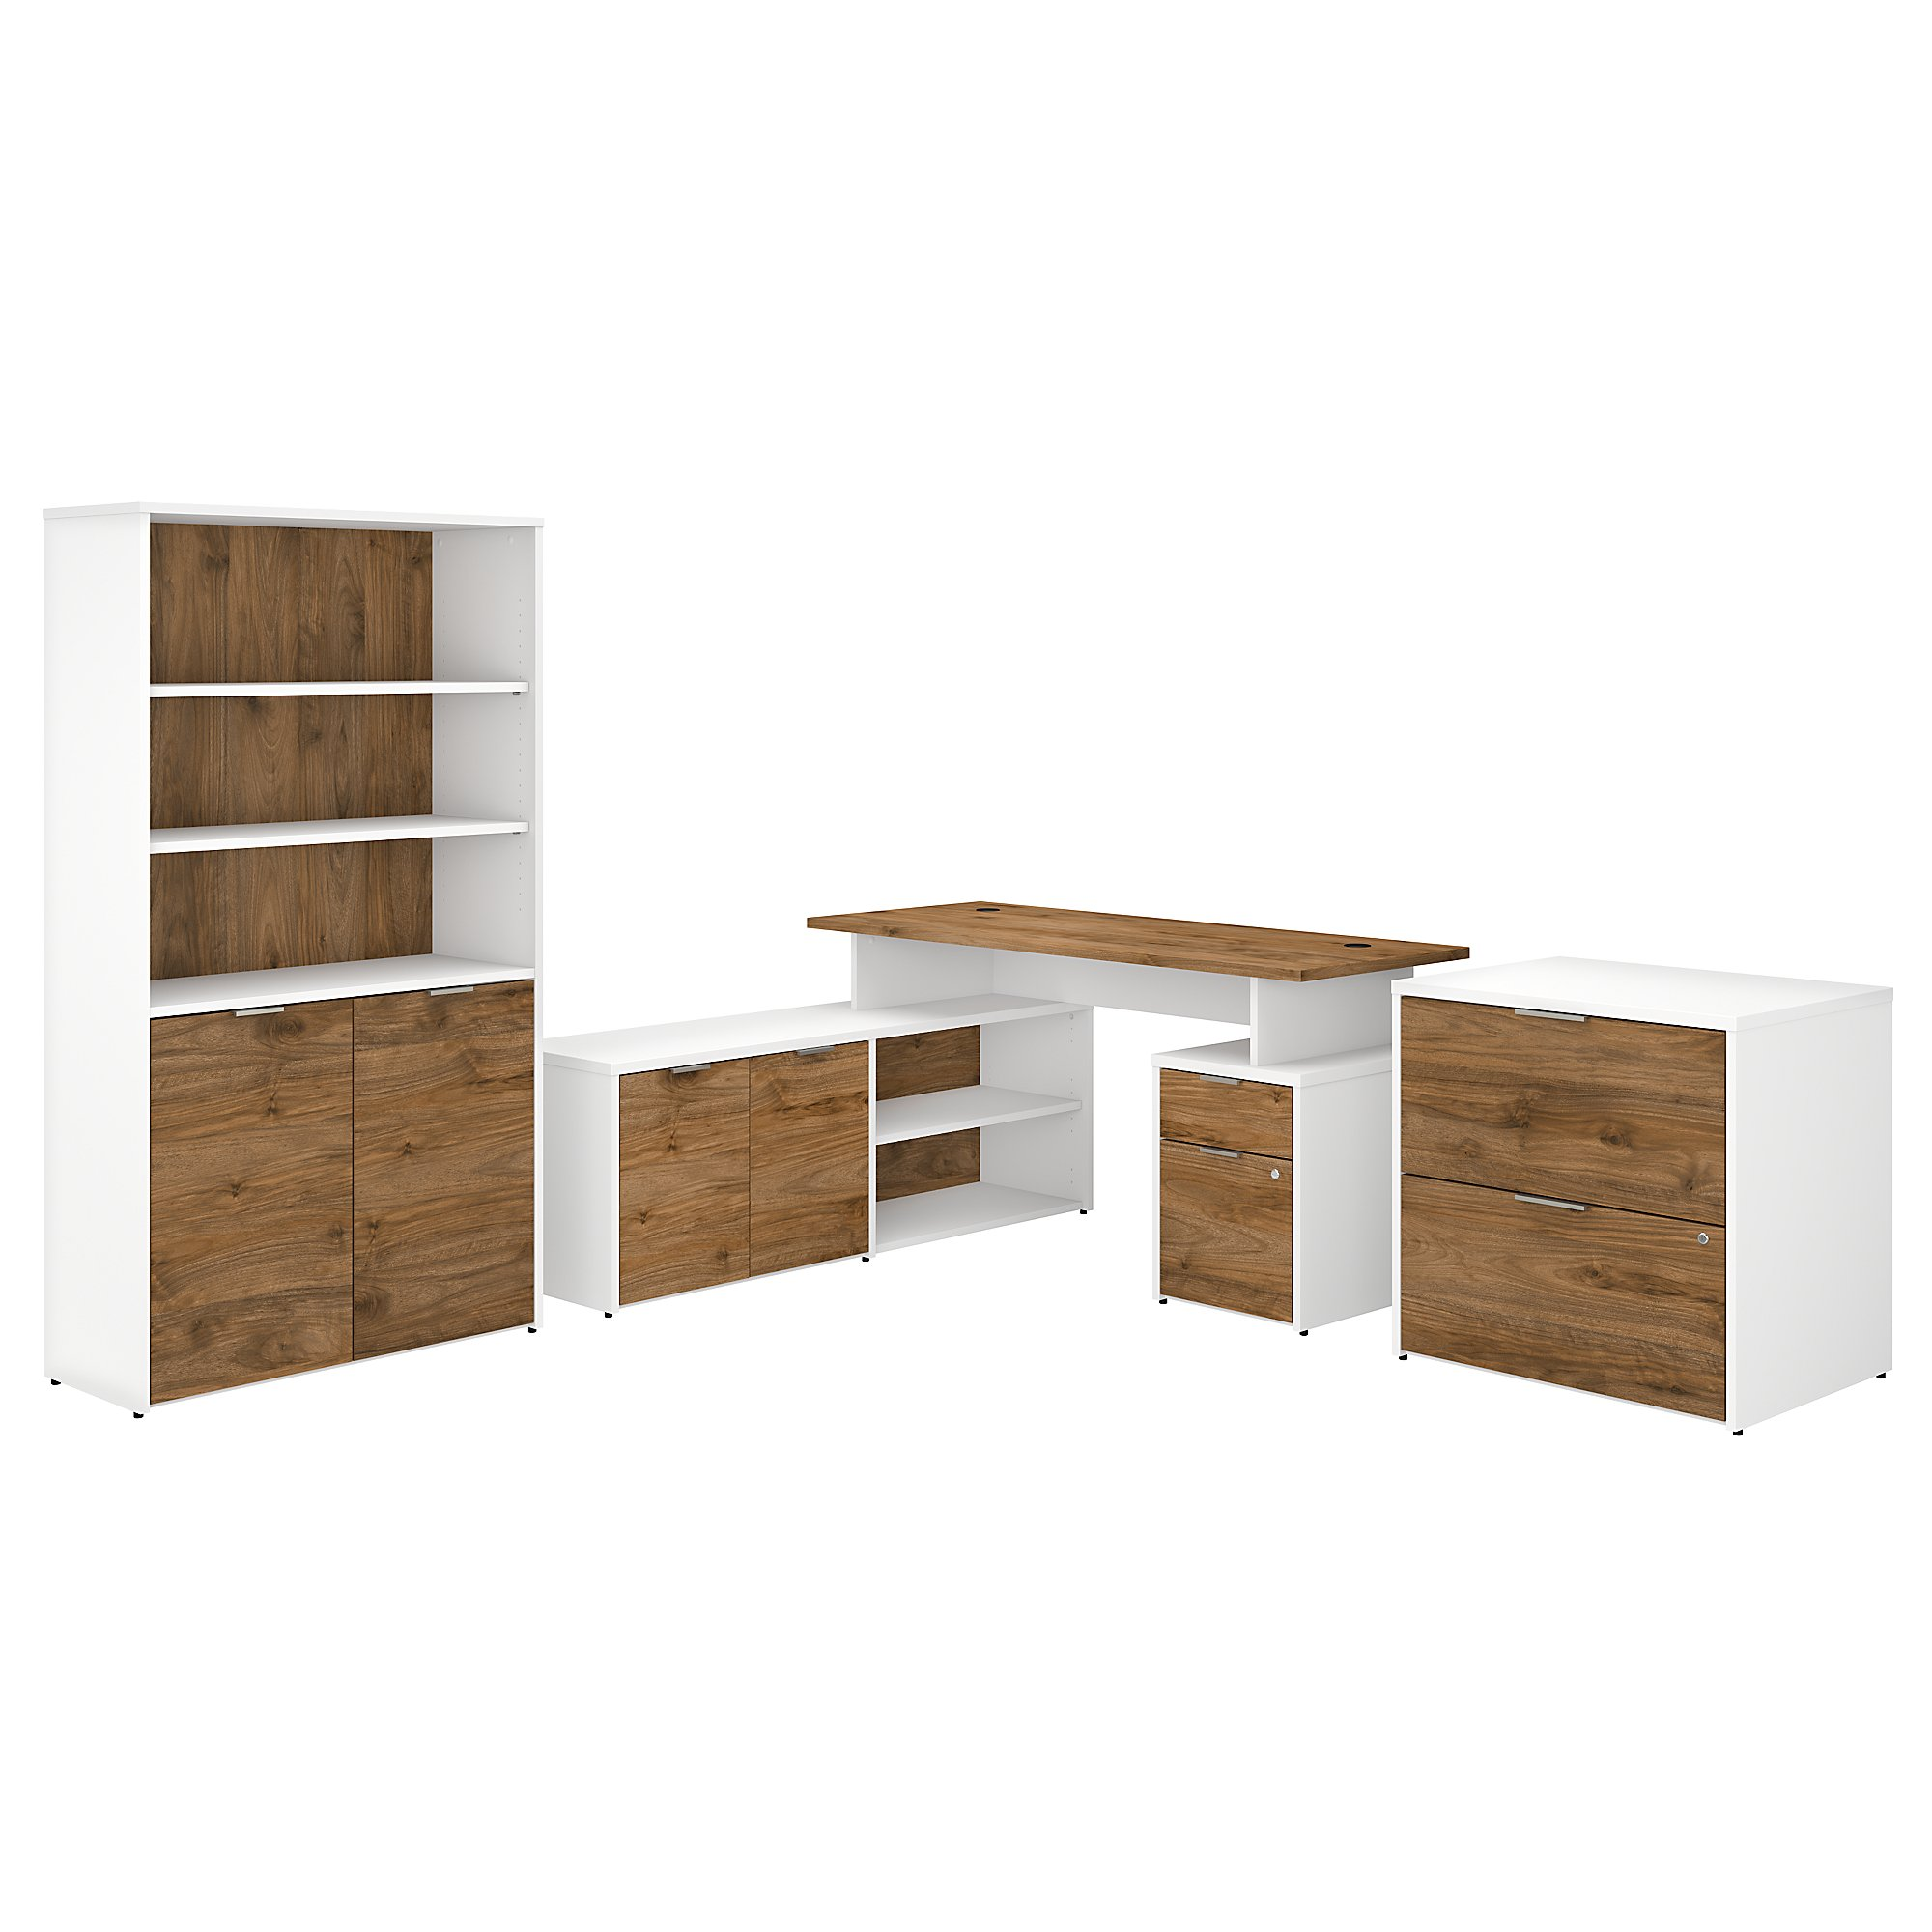 jamestown jtn023 walnut and white l desk set